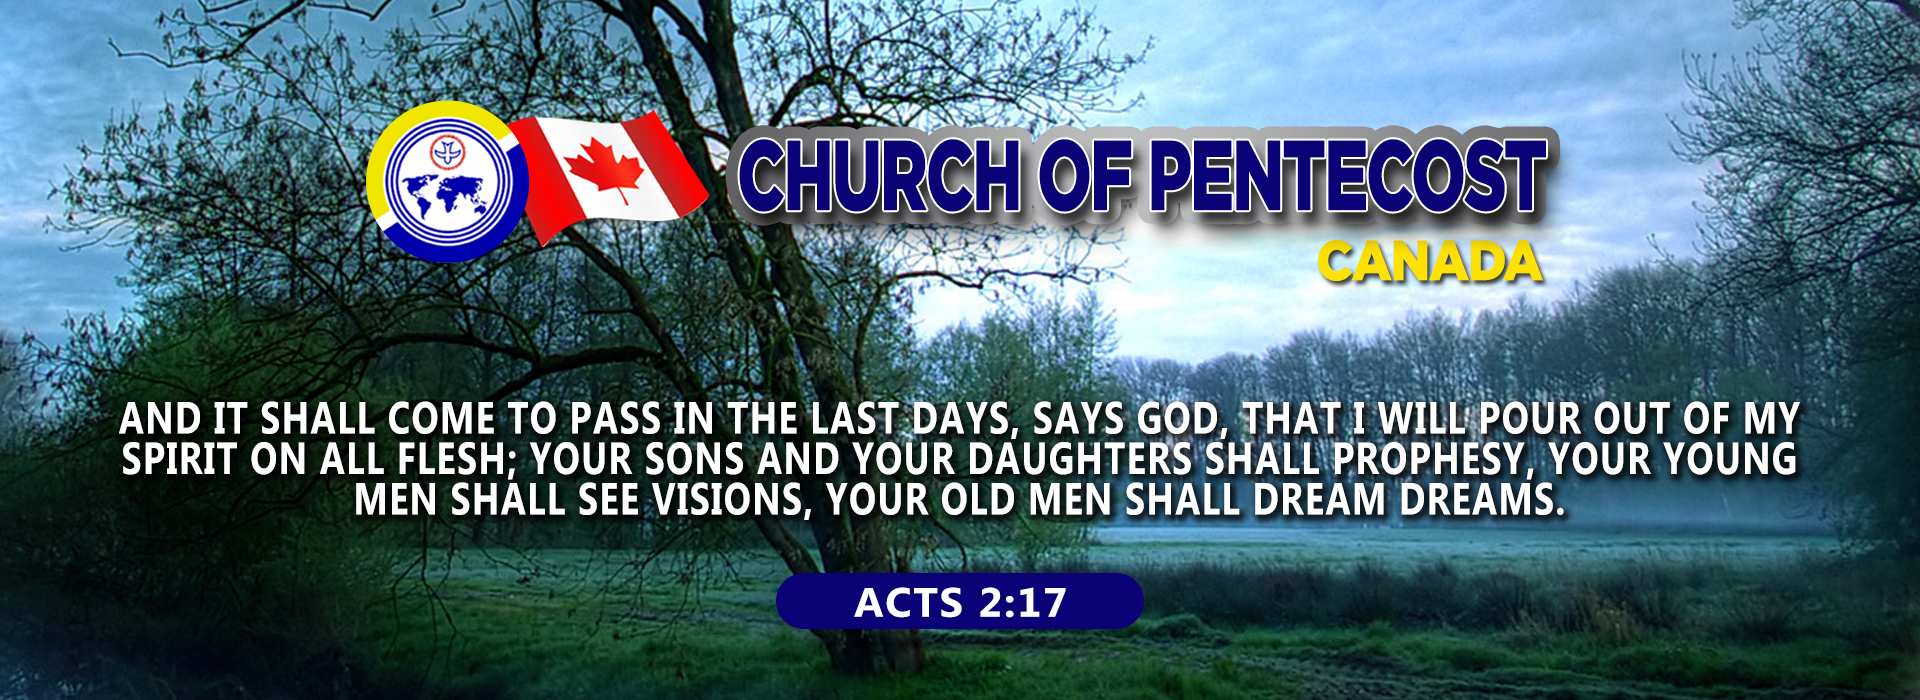 The Church of Pentecost Canada – Bringing the world to the saving